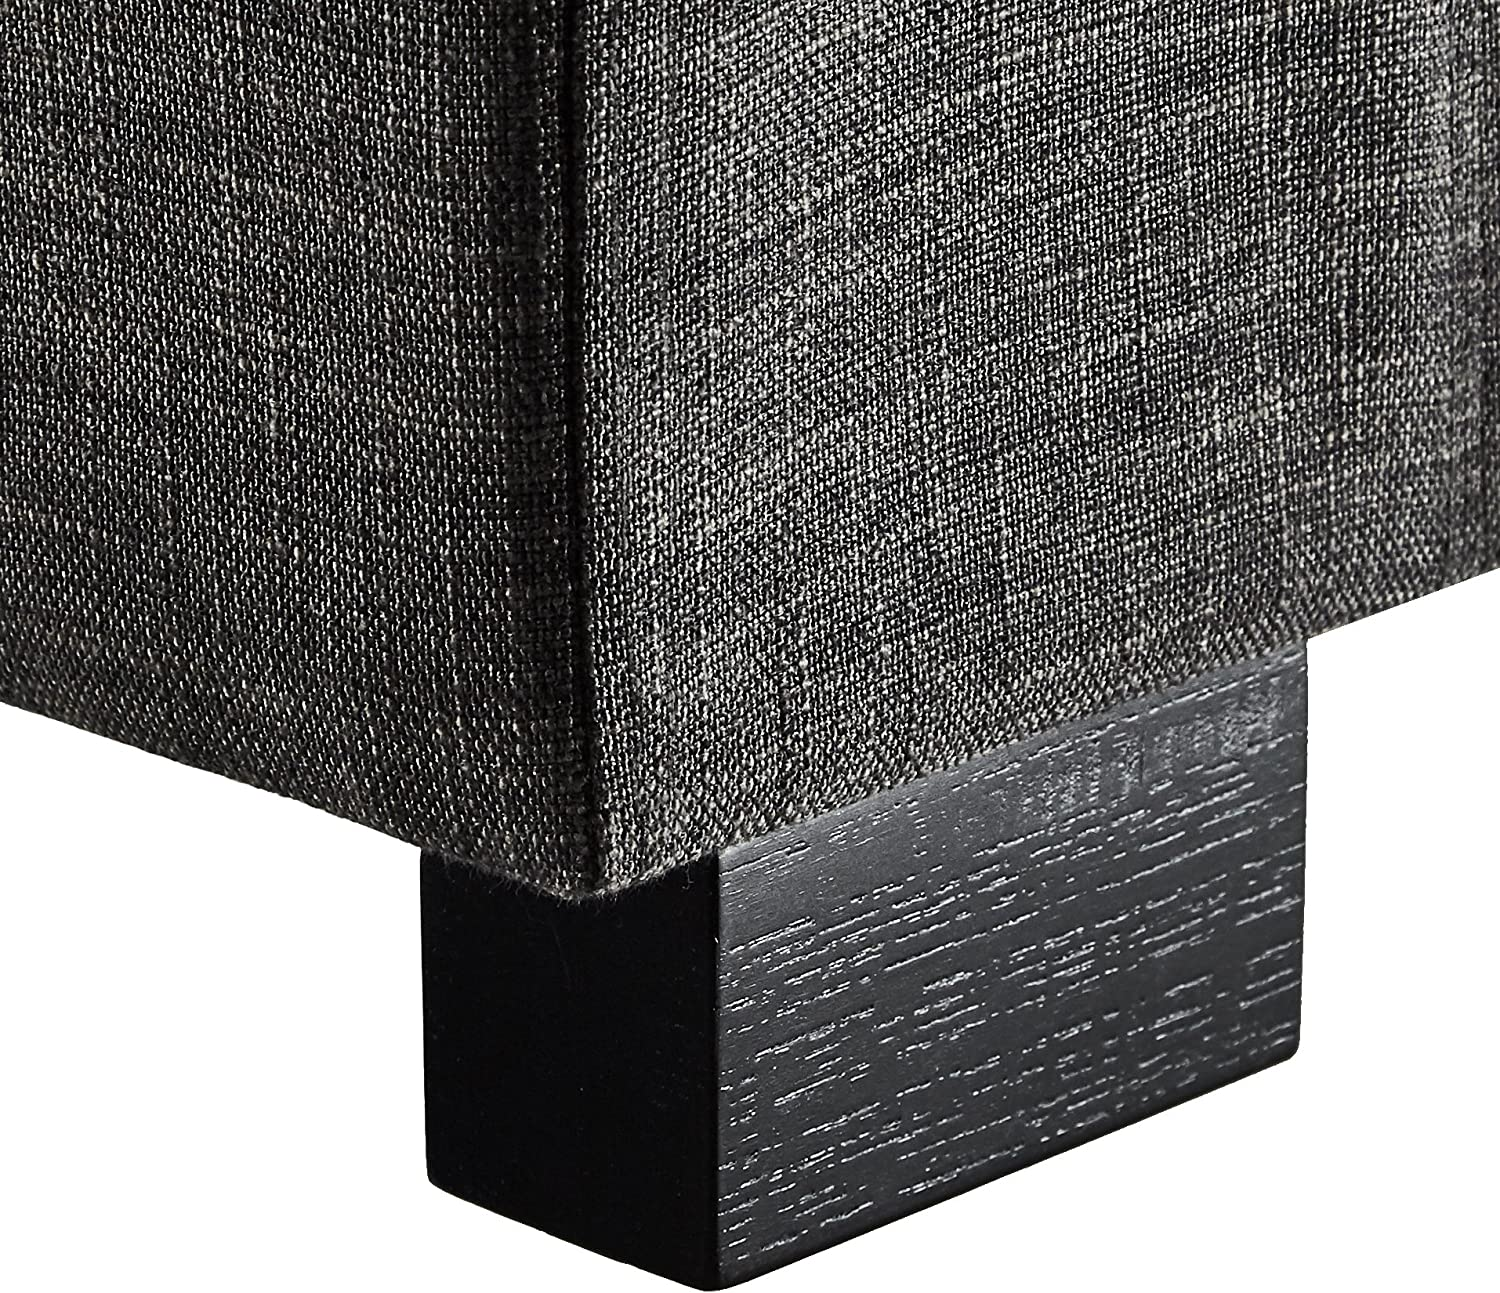 First Hill Calida Rectangular Storage Ottoman Bench with Fabric Upholstery, Large - Anchor Grey: Kitchen & Dining